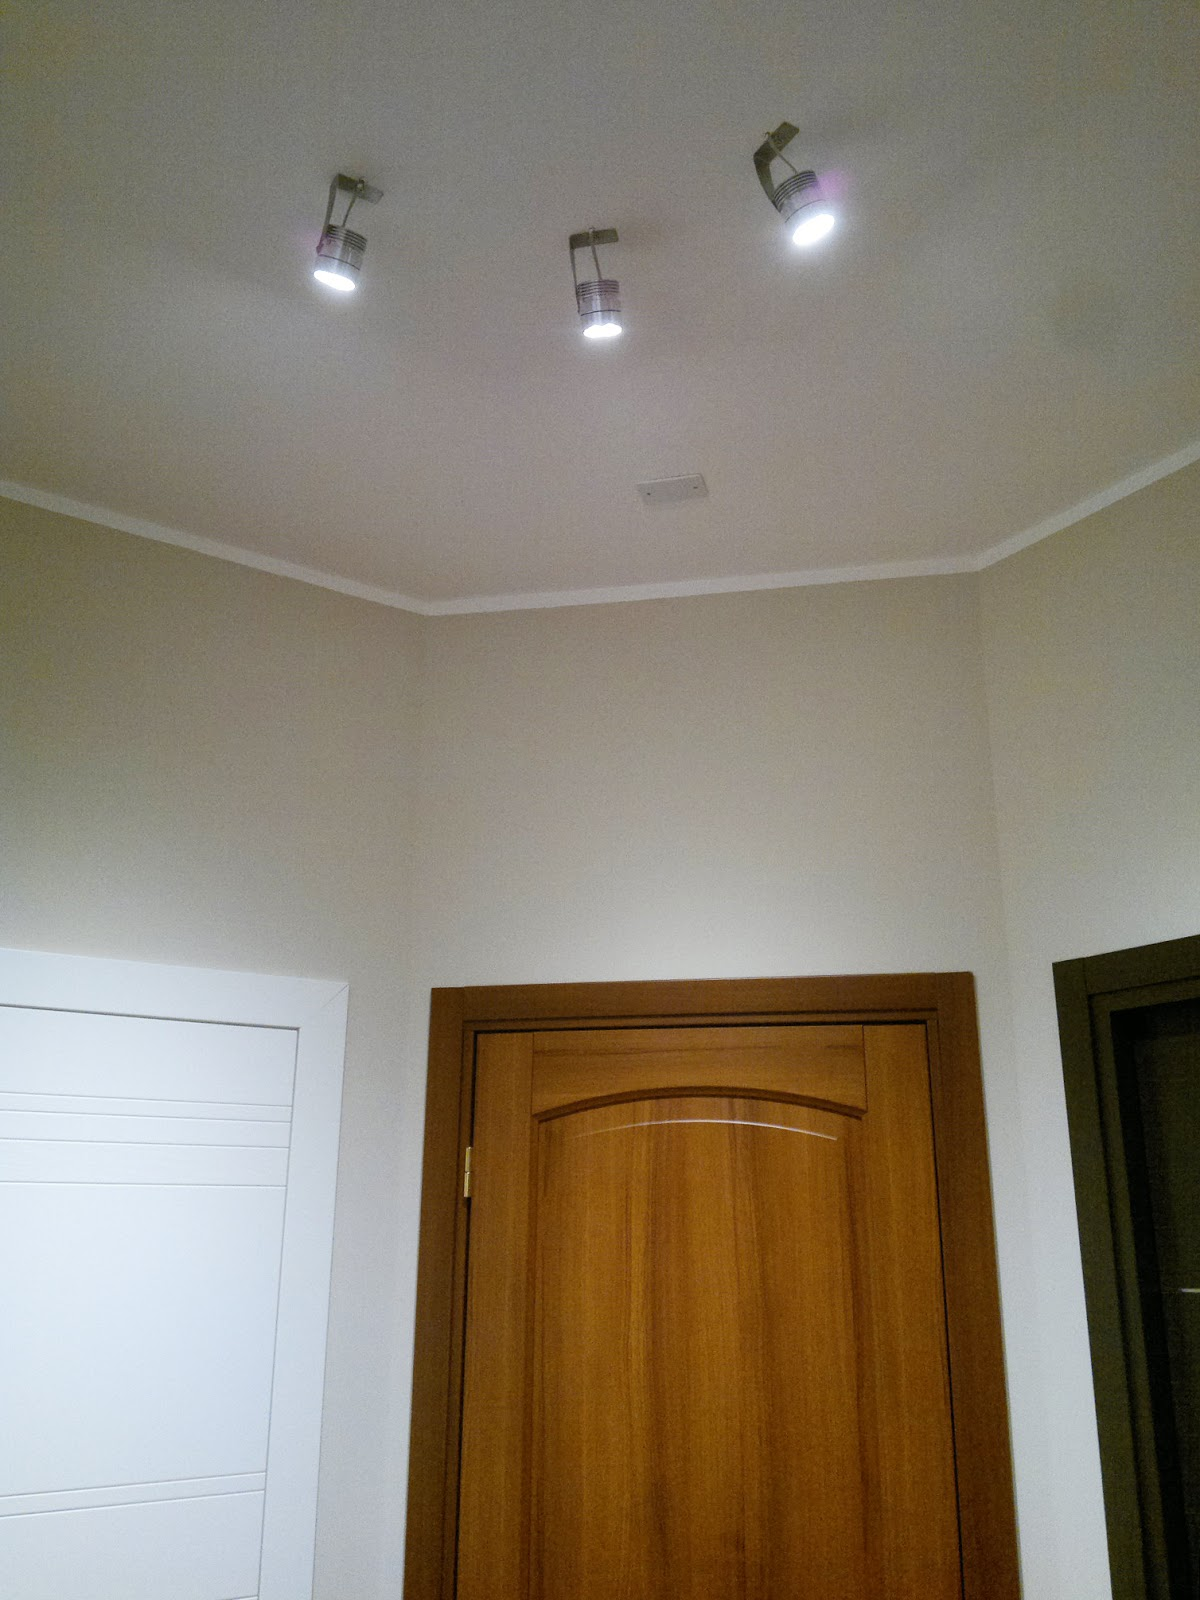 Illuminazione led casa illuminare a led gli ambienti con for Luci led per casa